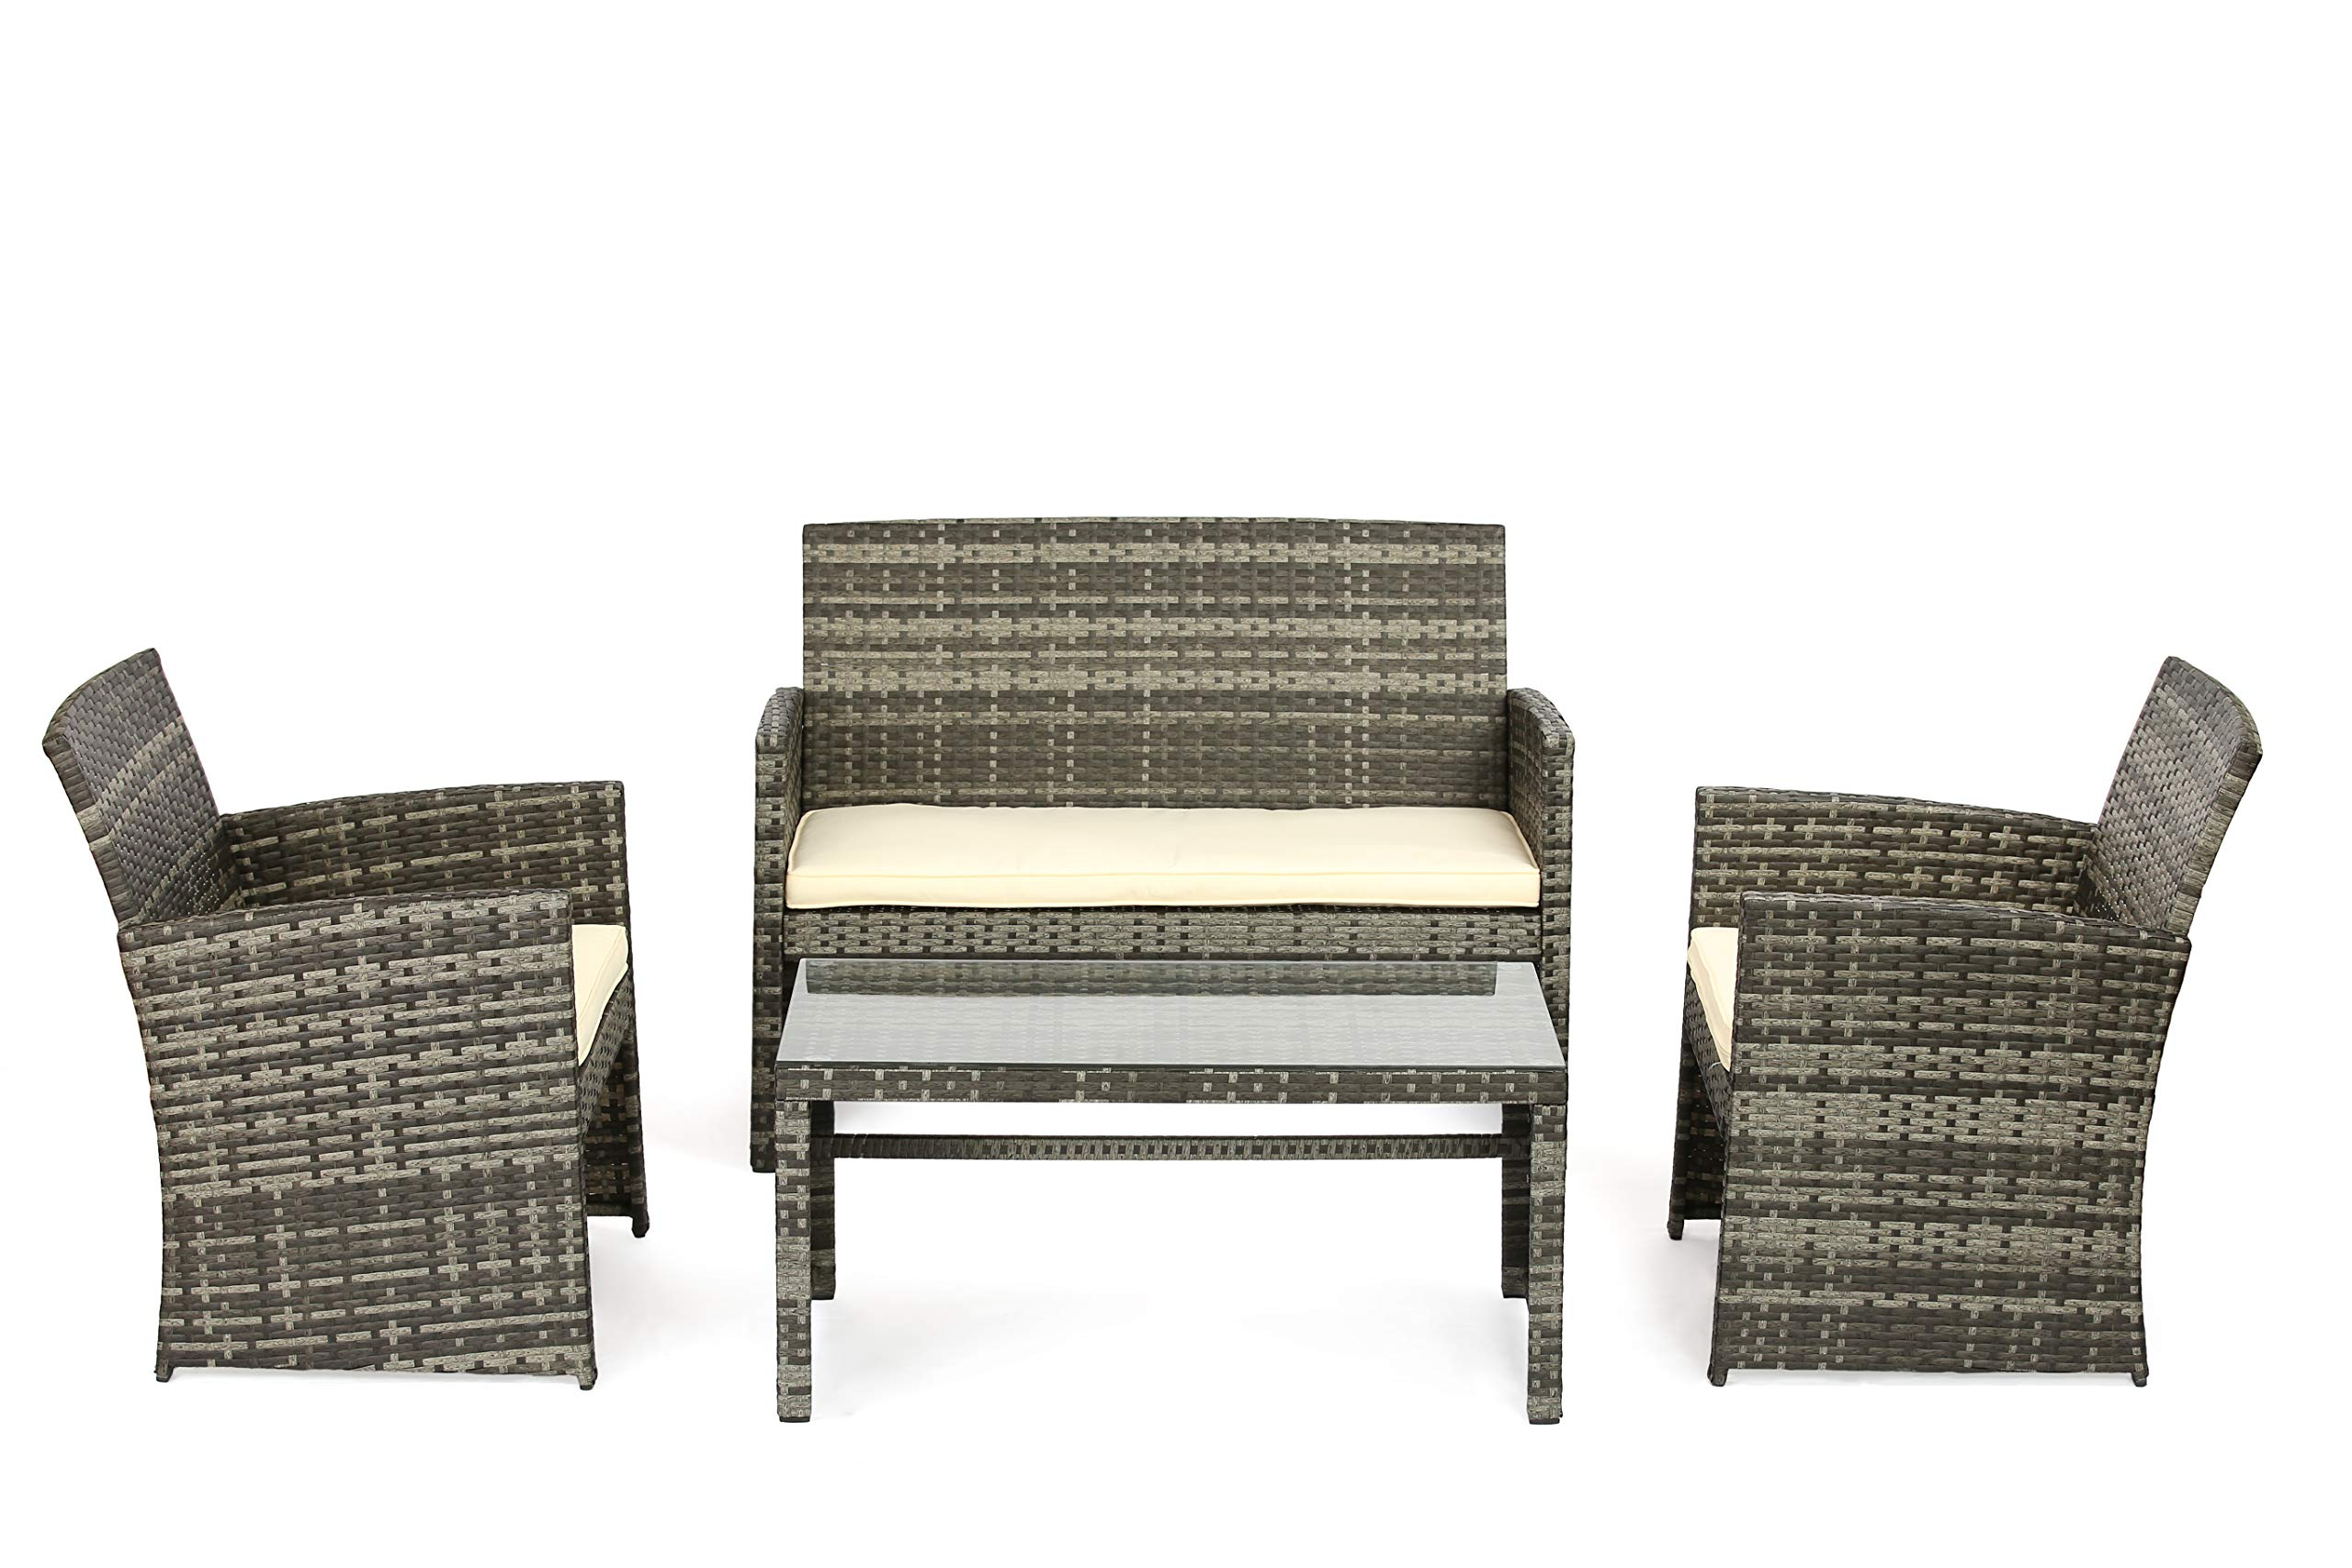 OUTROAD Outdoor Furniture 4 Piece Grey Wicker Patio Sofa Set - All Weather Cushioned Wicker Love Seat with Glass Top Table and Two Armchairs - Premium Comfort - This patio set comes with 1 loveseat, 2 chairs and tempered glass top table. Great for a small group get together, relax and enjoy a moment of peace. Build a cozy corner for a high tea or a magazine. Sturdy and durable - Powder-coated steel with hand woven weather-resistent PE ratten wicker for the best stability and extended life cycle Quick Assembly - All hardware and tools are included for a quick and pleasant assembly. Easy project for a valuable family exercise. - patio-furniture, patio, conversation-sets - 81ABOwxjOBL -